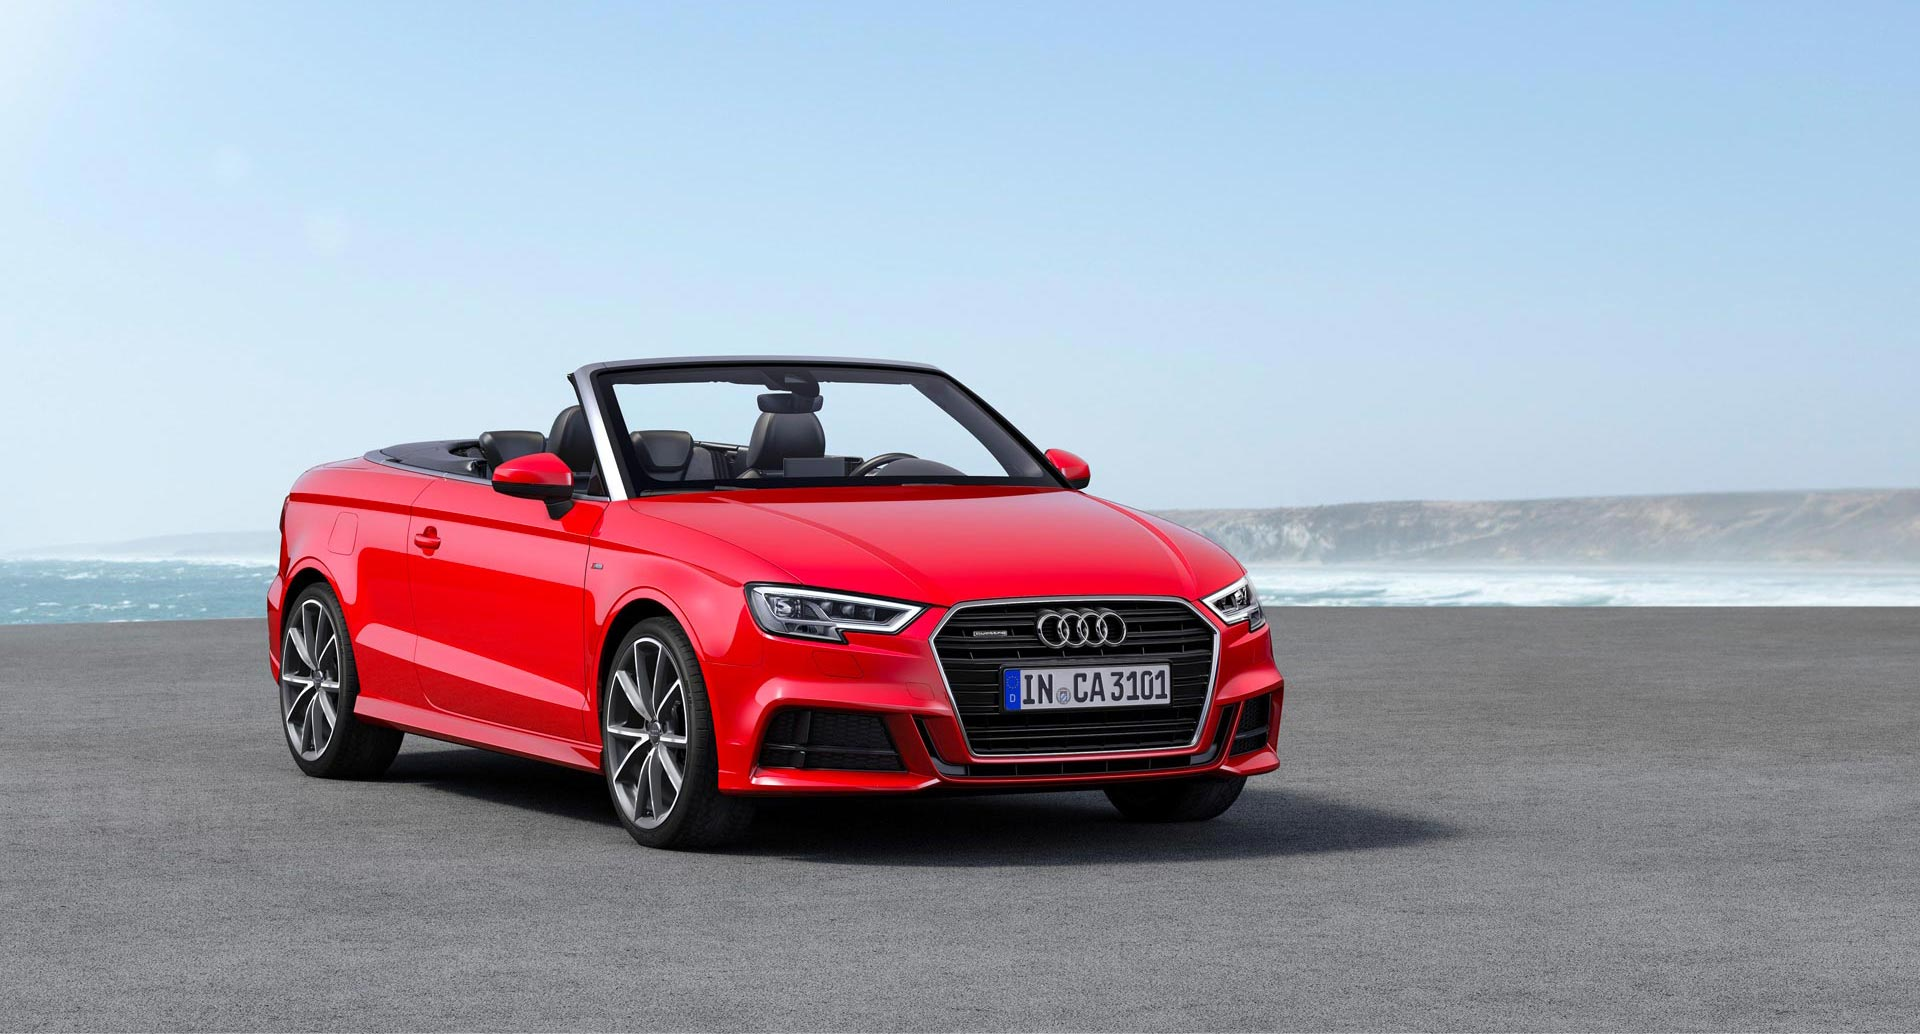 2017 Audi A3 Cabriolet Launched At Rs 47 98 Lakh